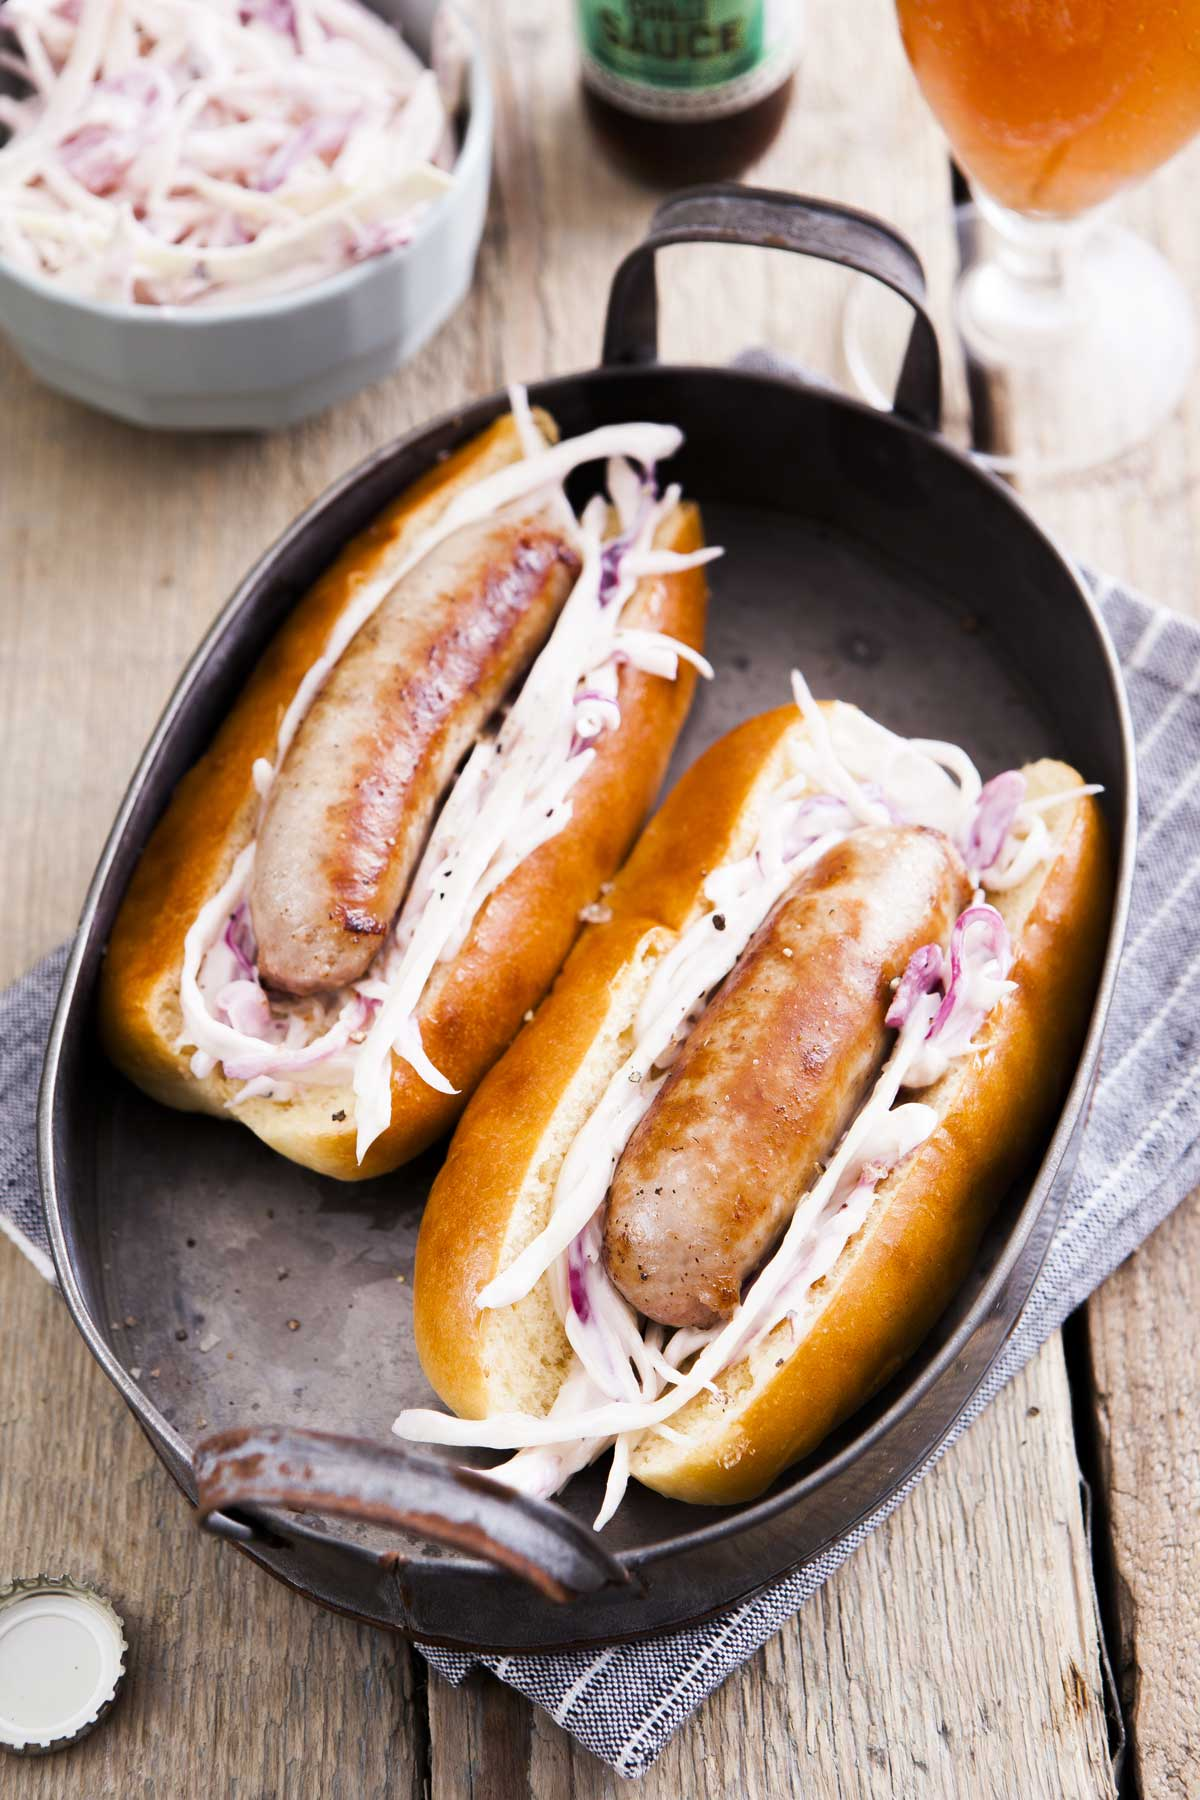 HOT DOGS & COLESLAW